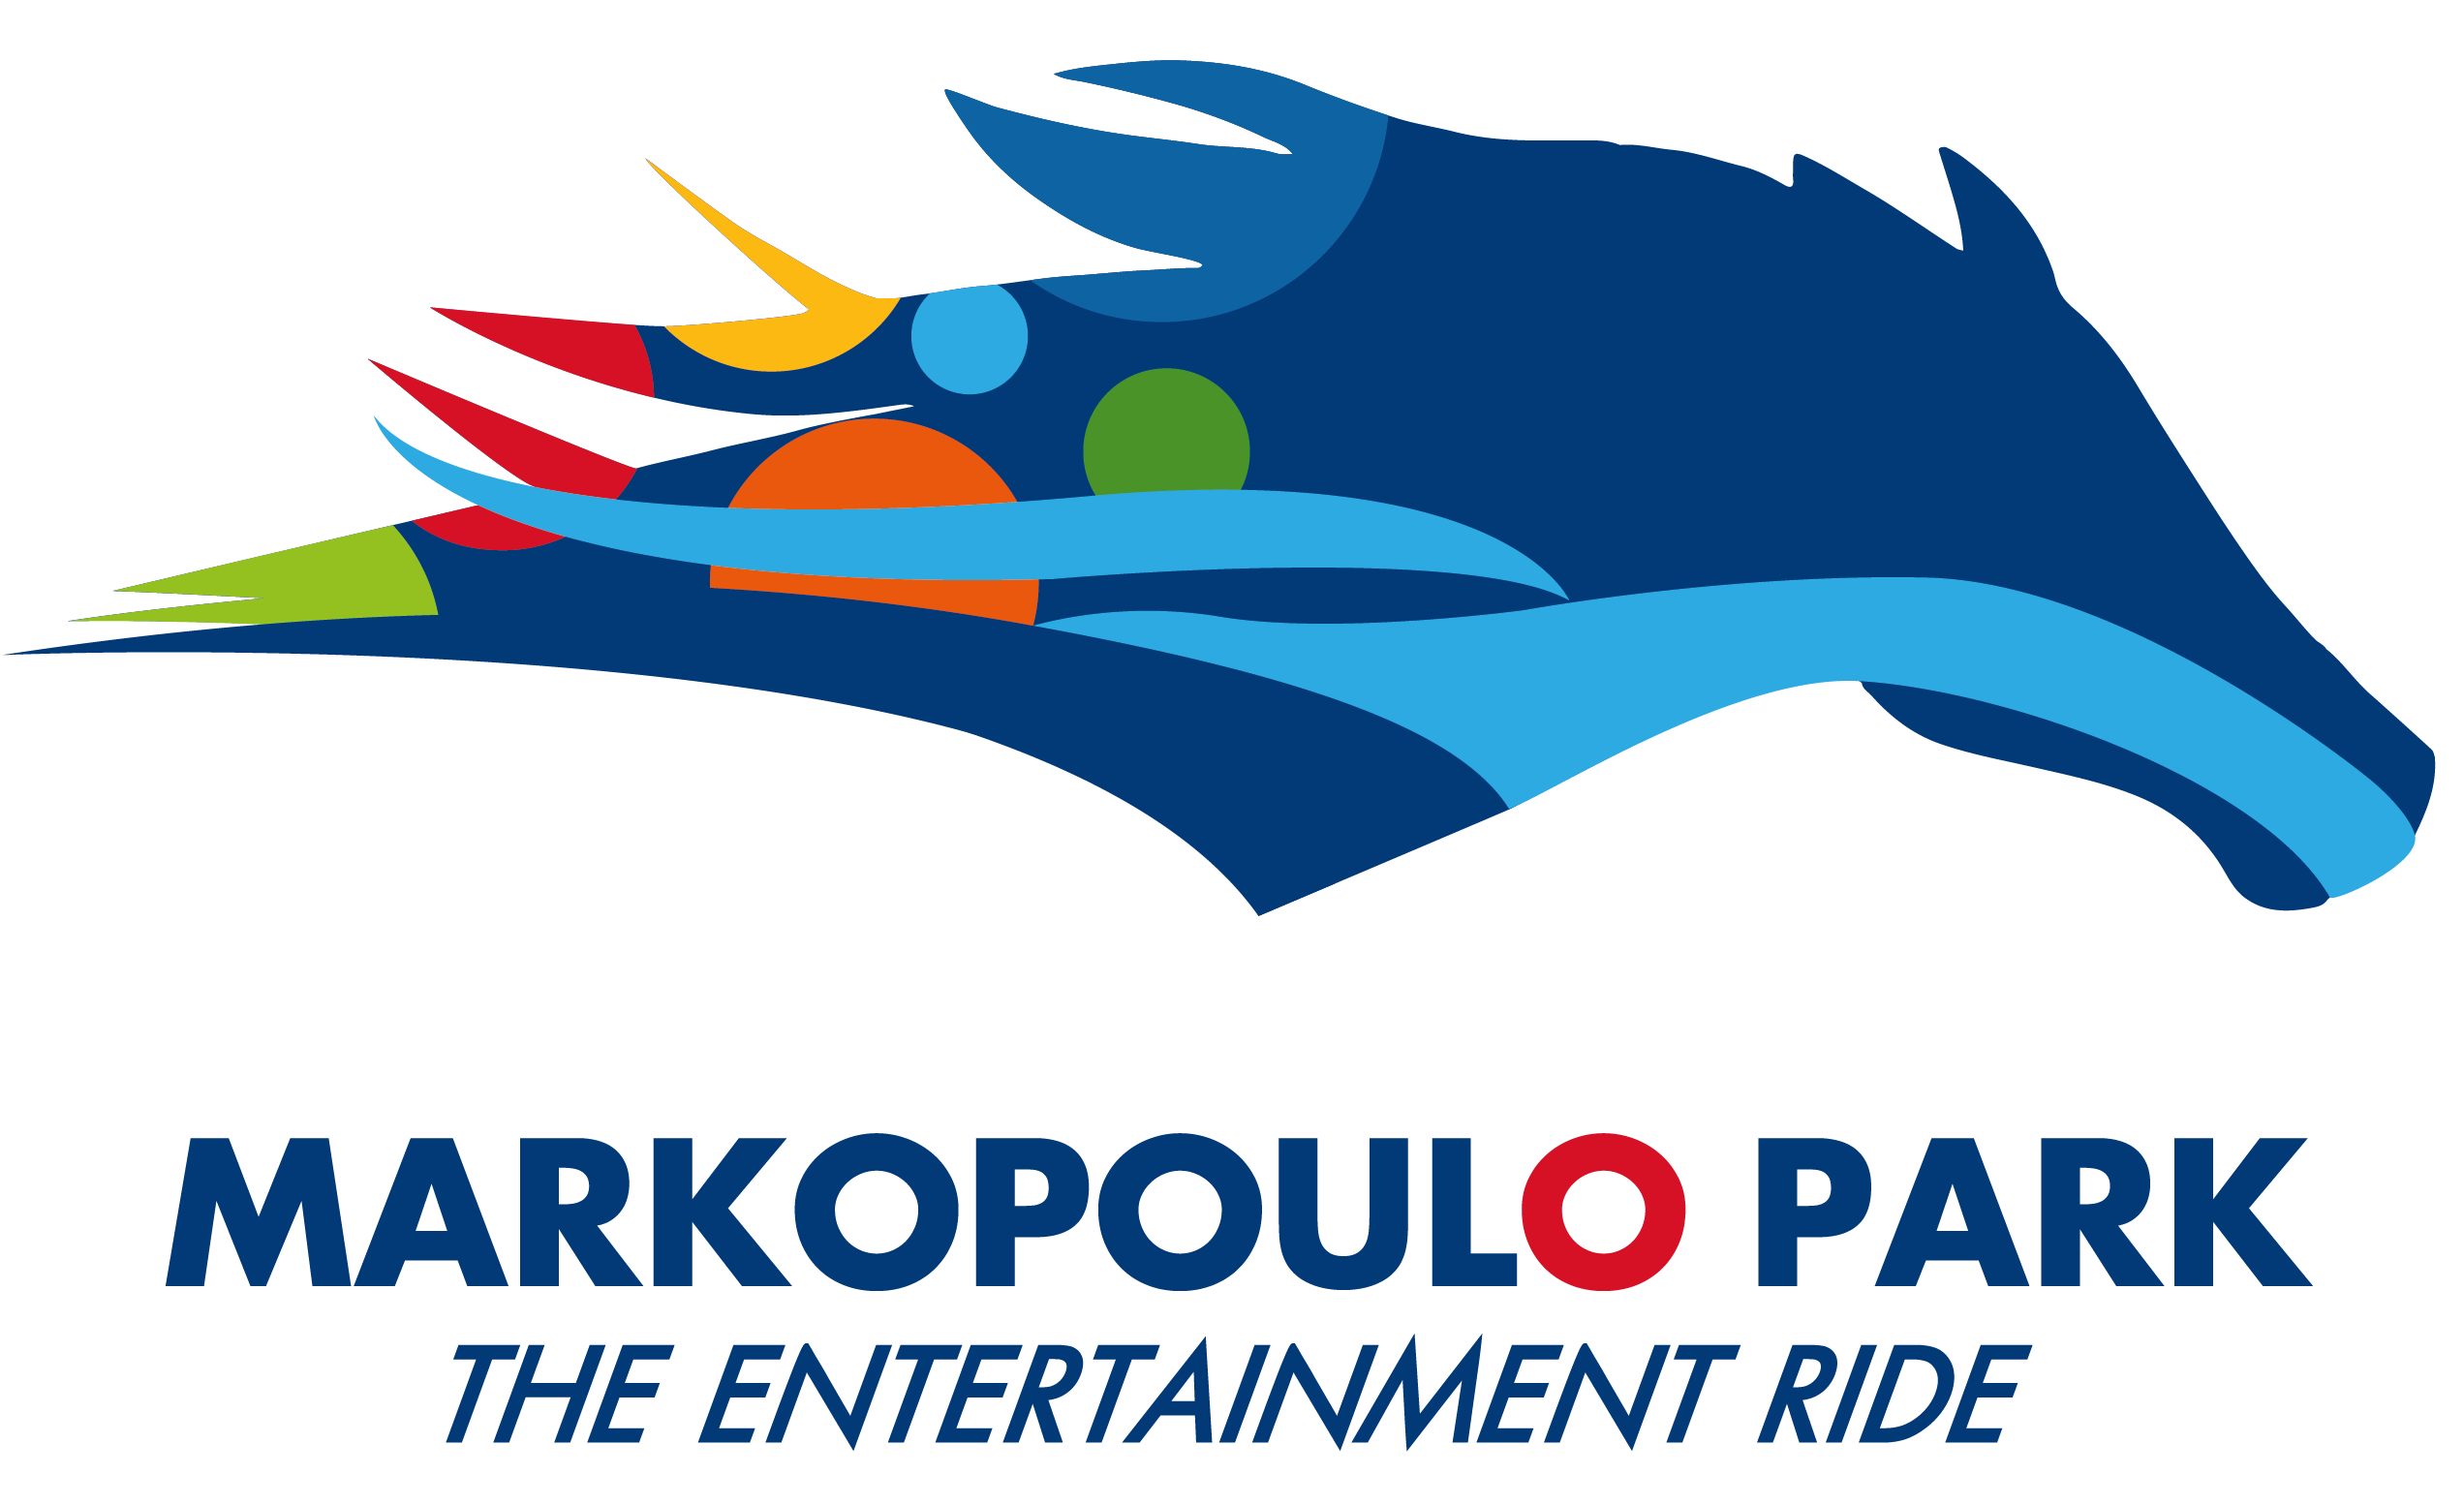 Markopoulo Park